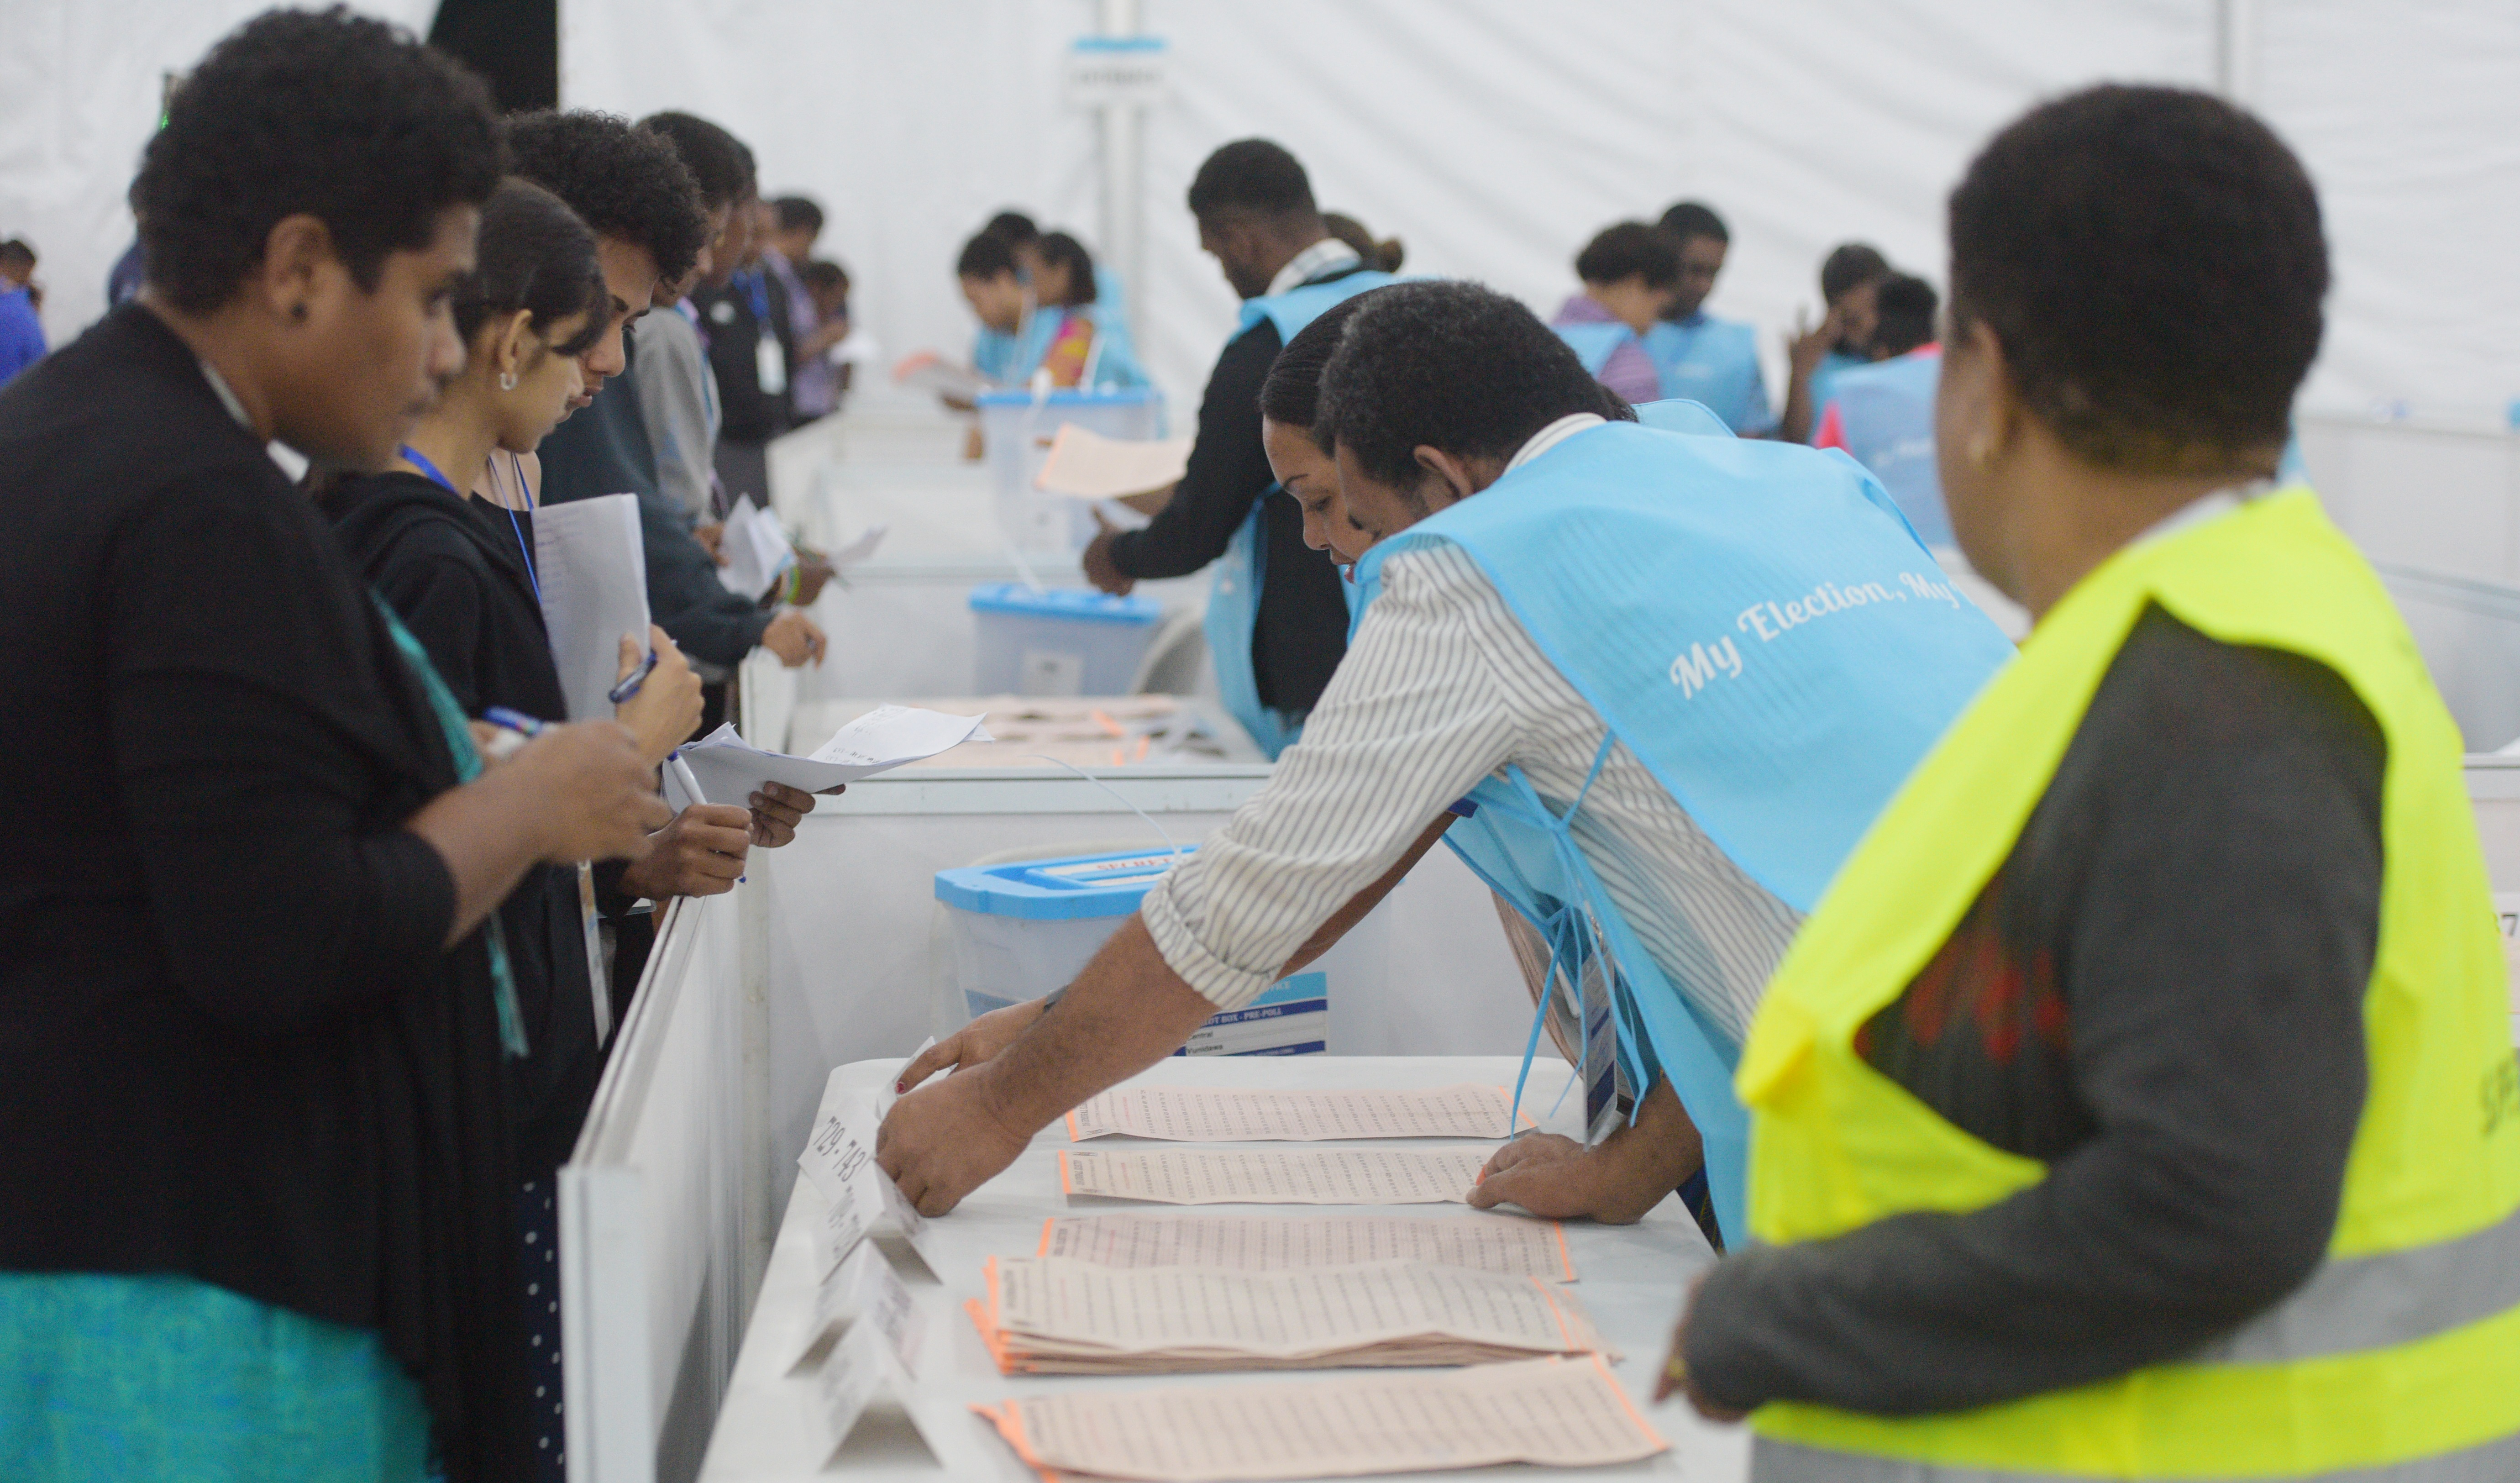 Fijian Elections Office officials and political party poll agents at the National Results Centre at the FMF Gymnasium, Laucala Bay, Suva, on November 15, 2018.  Photo: Ronald Kumar